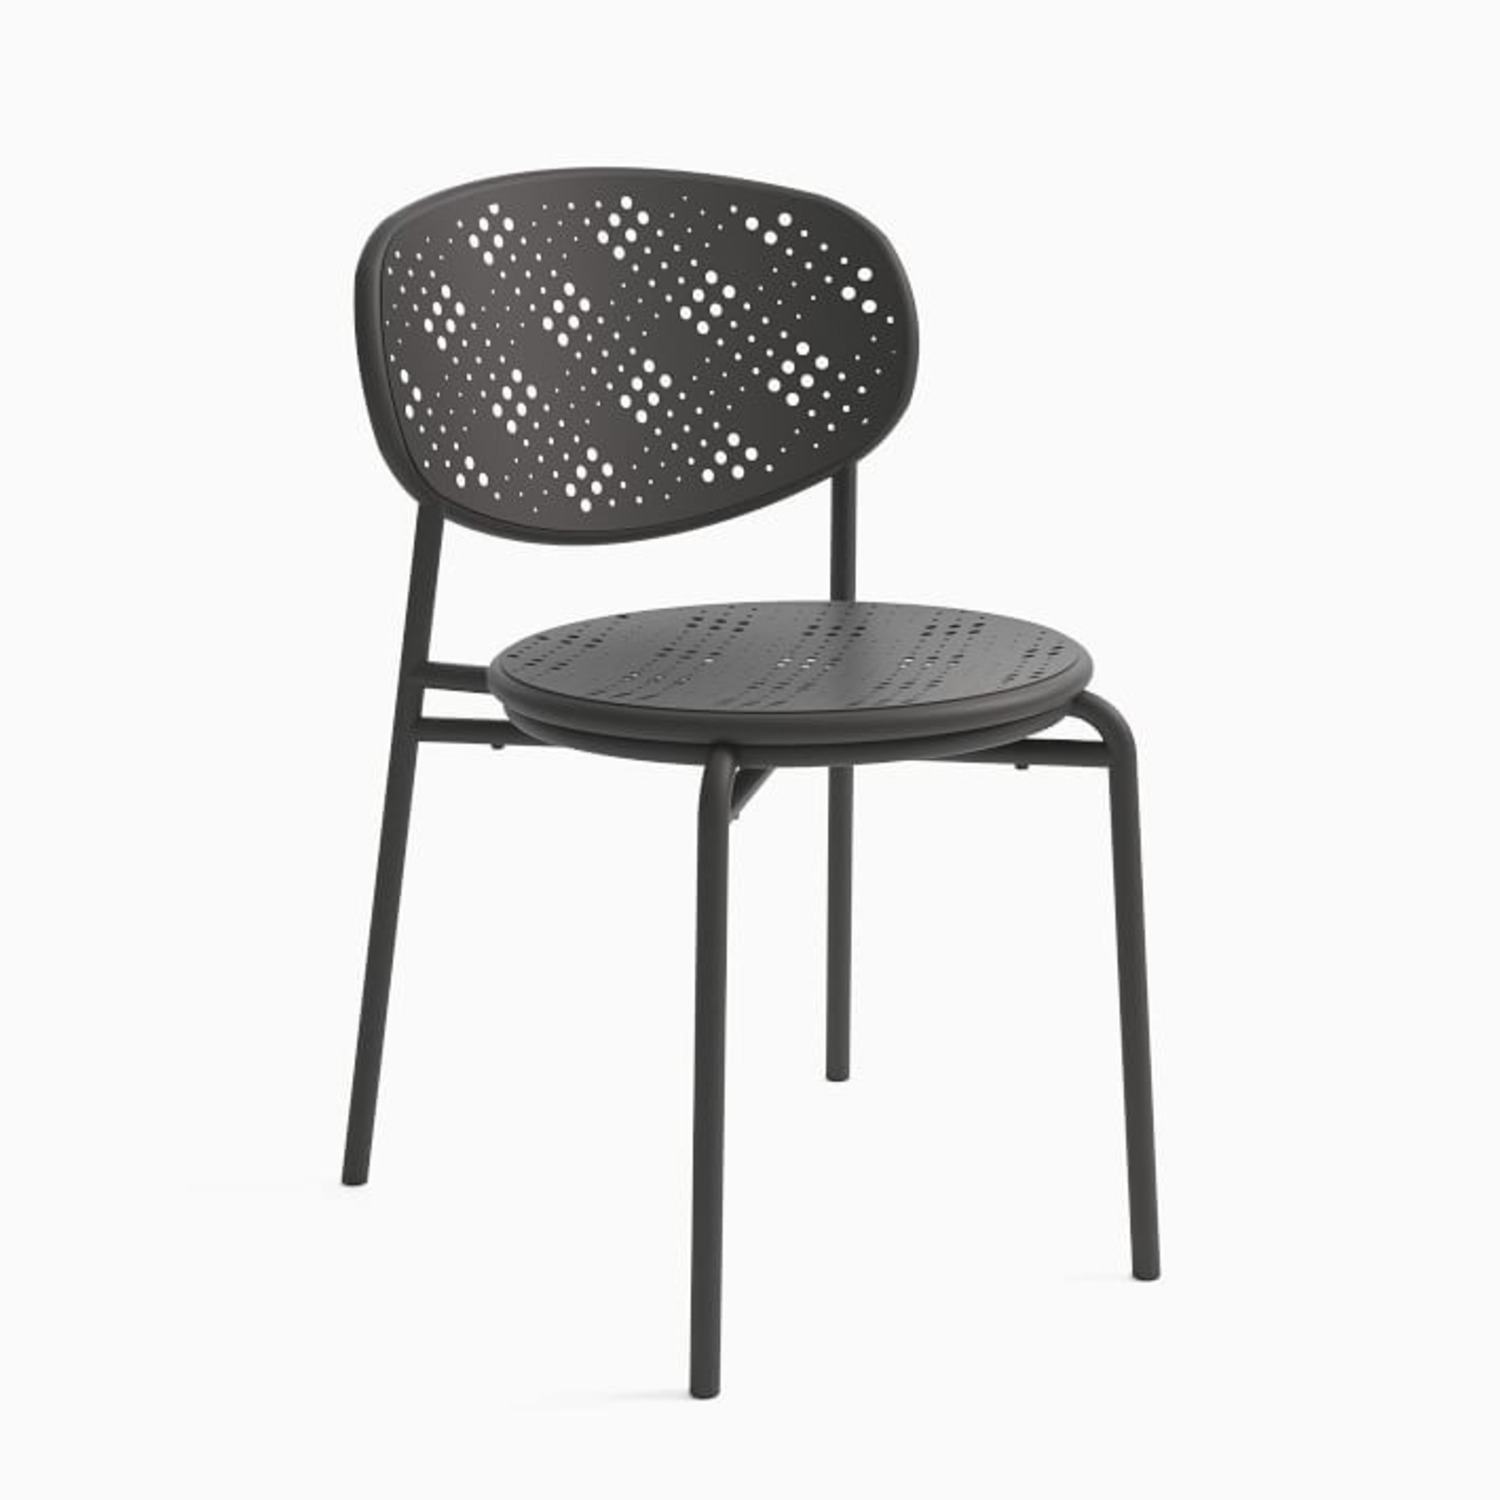 West Elm Cagney Outdoor Stacking Chair, Peppercorn - image-1